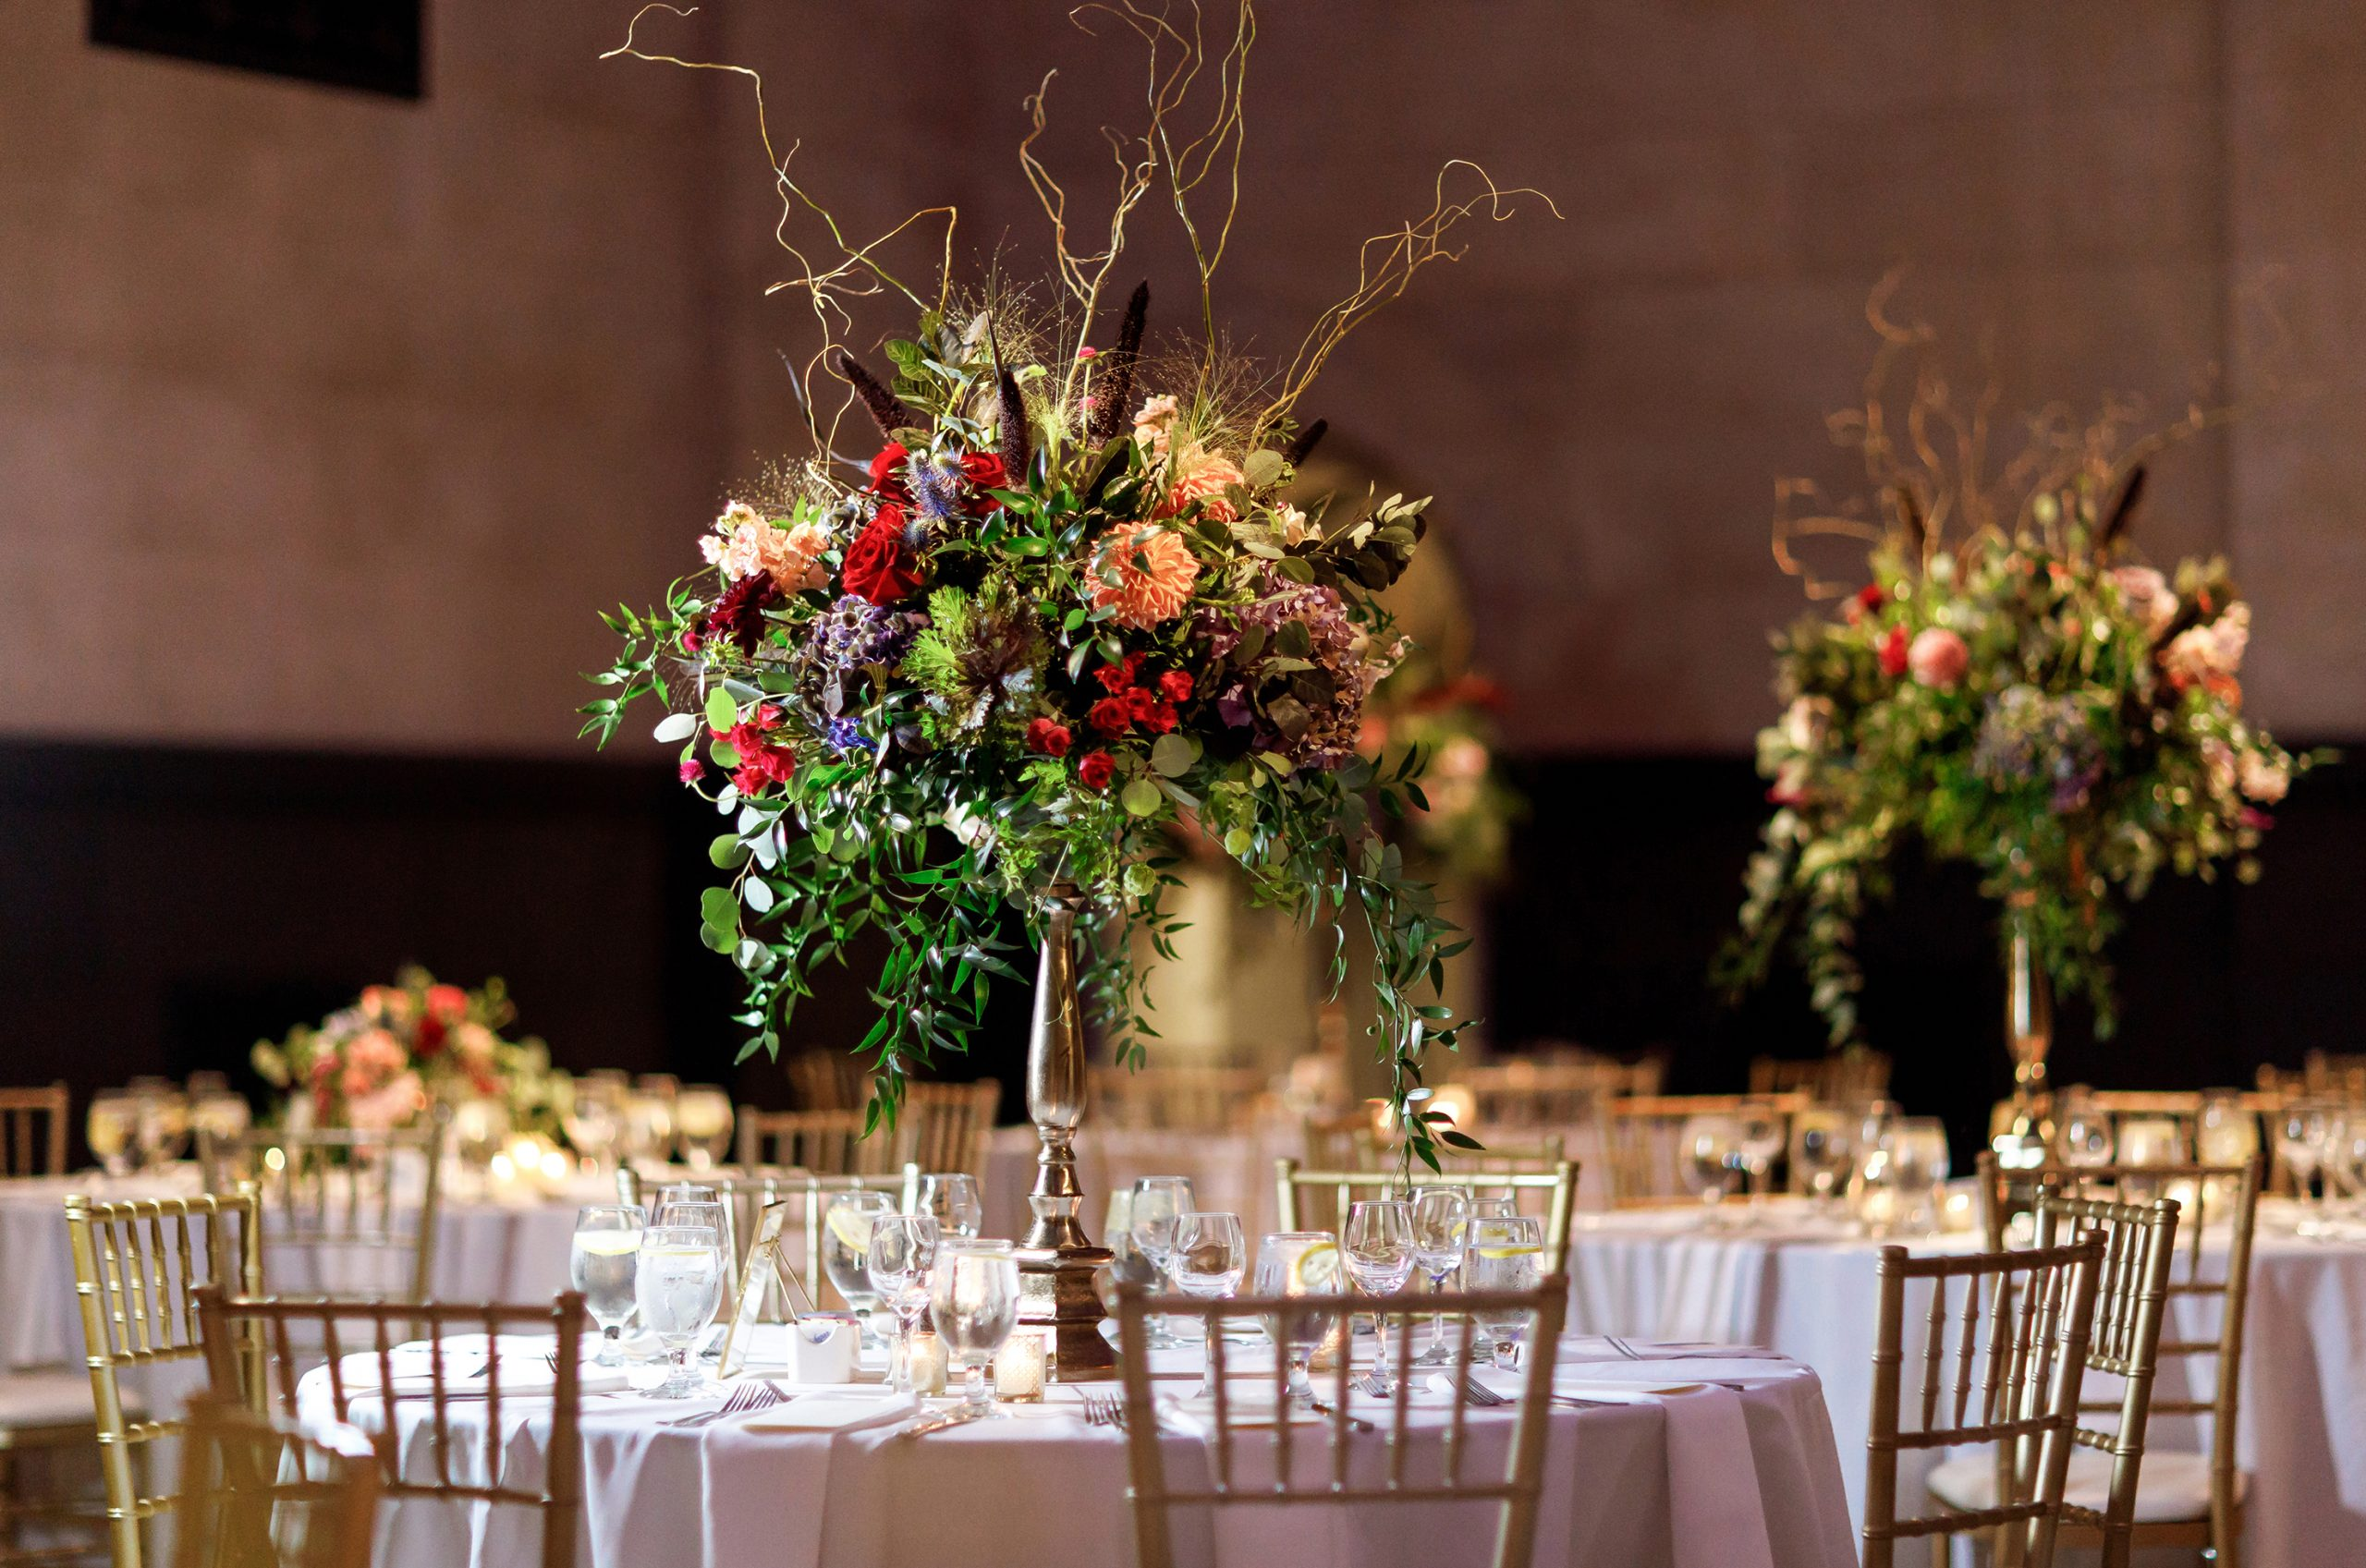 Striking tall floral centerpieces in rich fall colors rise above the tables set for the wedding reception, surrounded by the classical Great Hall in the Cincinnati Art Museum.